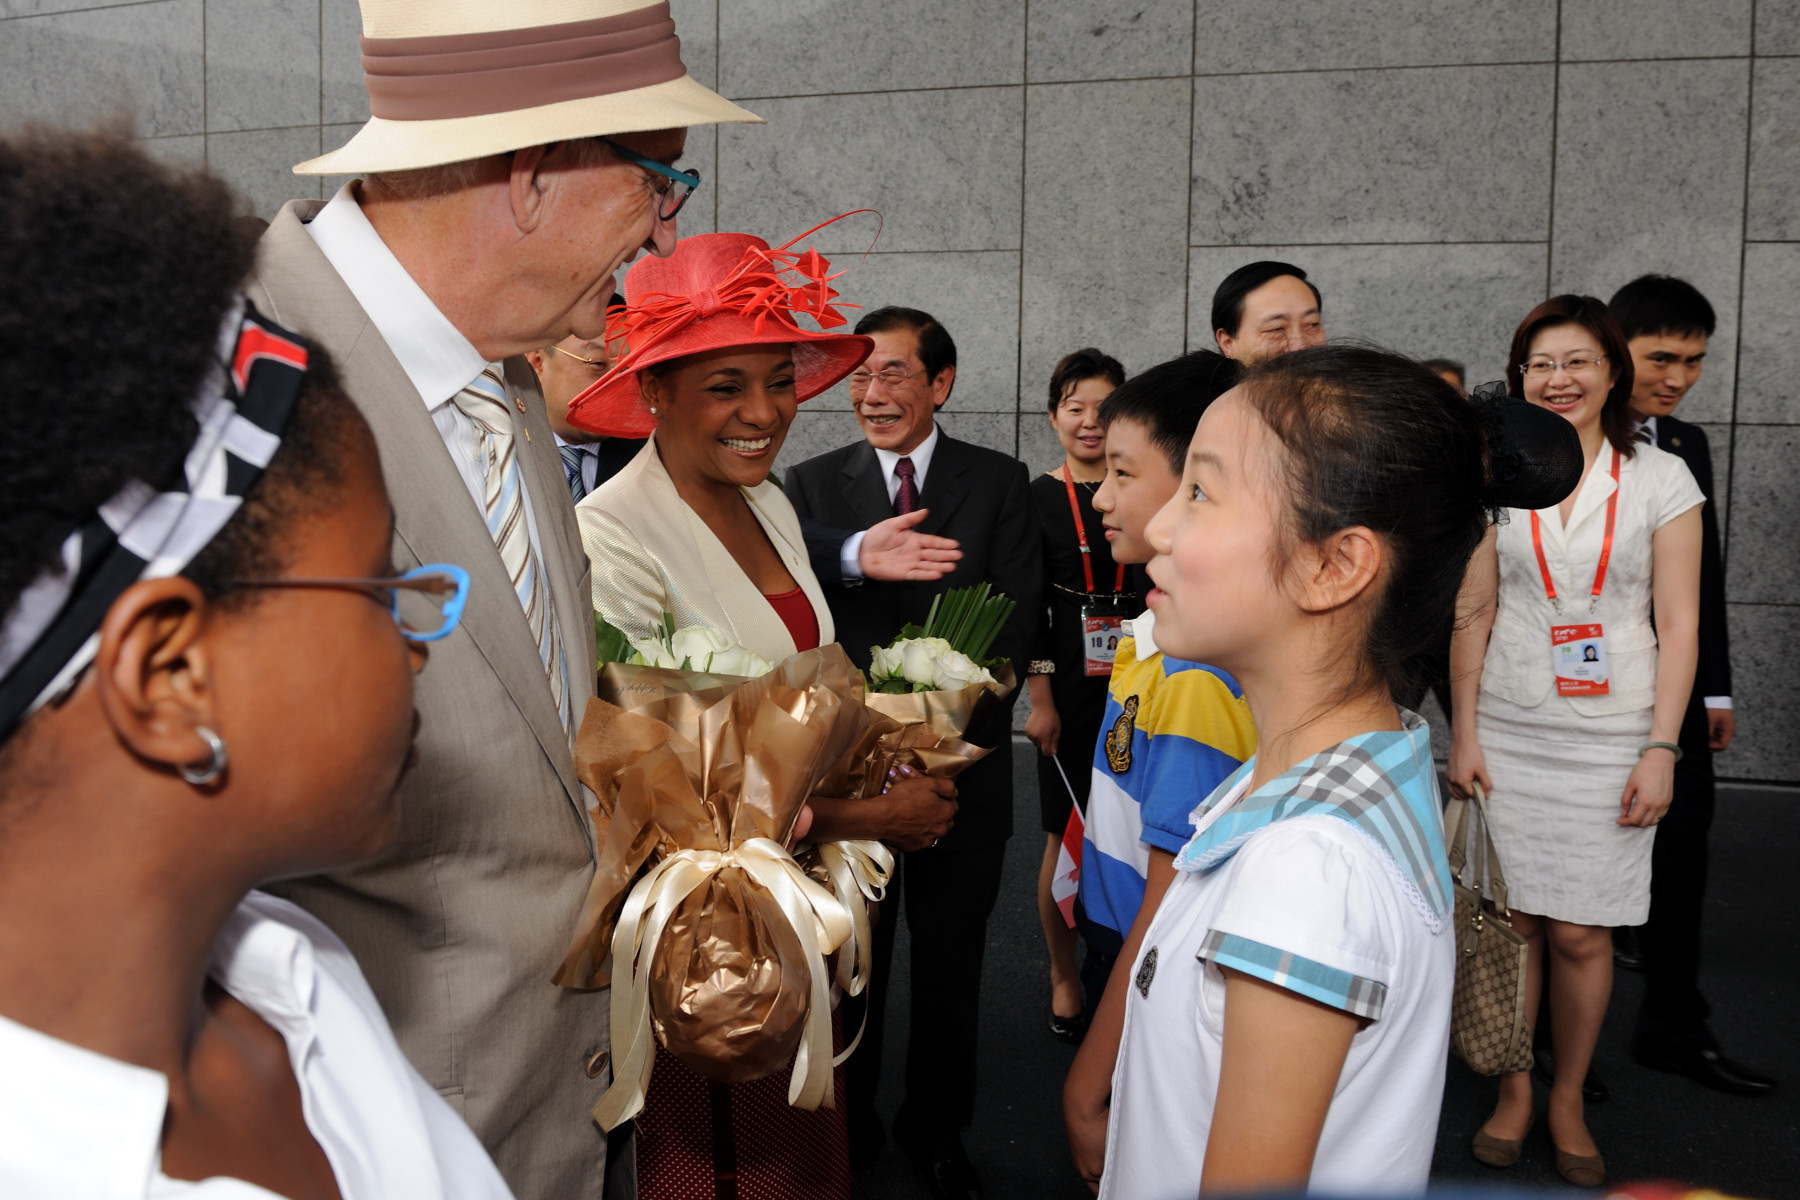 Their Excellencies are welcomed to Expo Shanghai 2010.